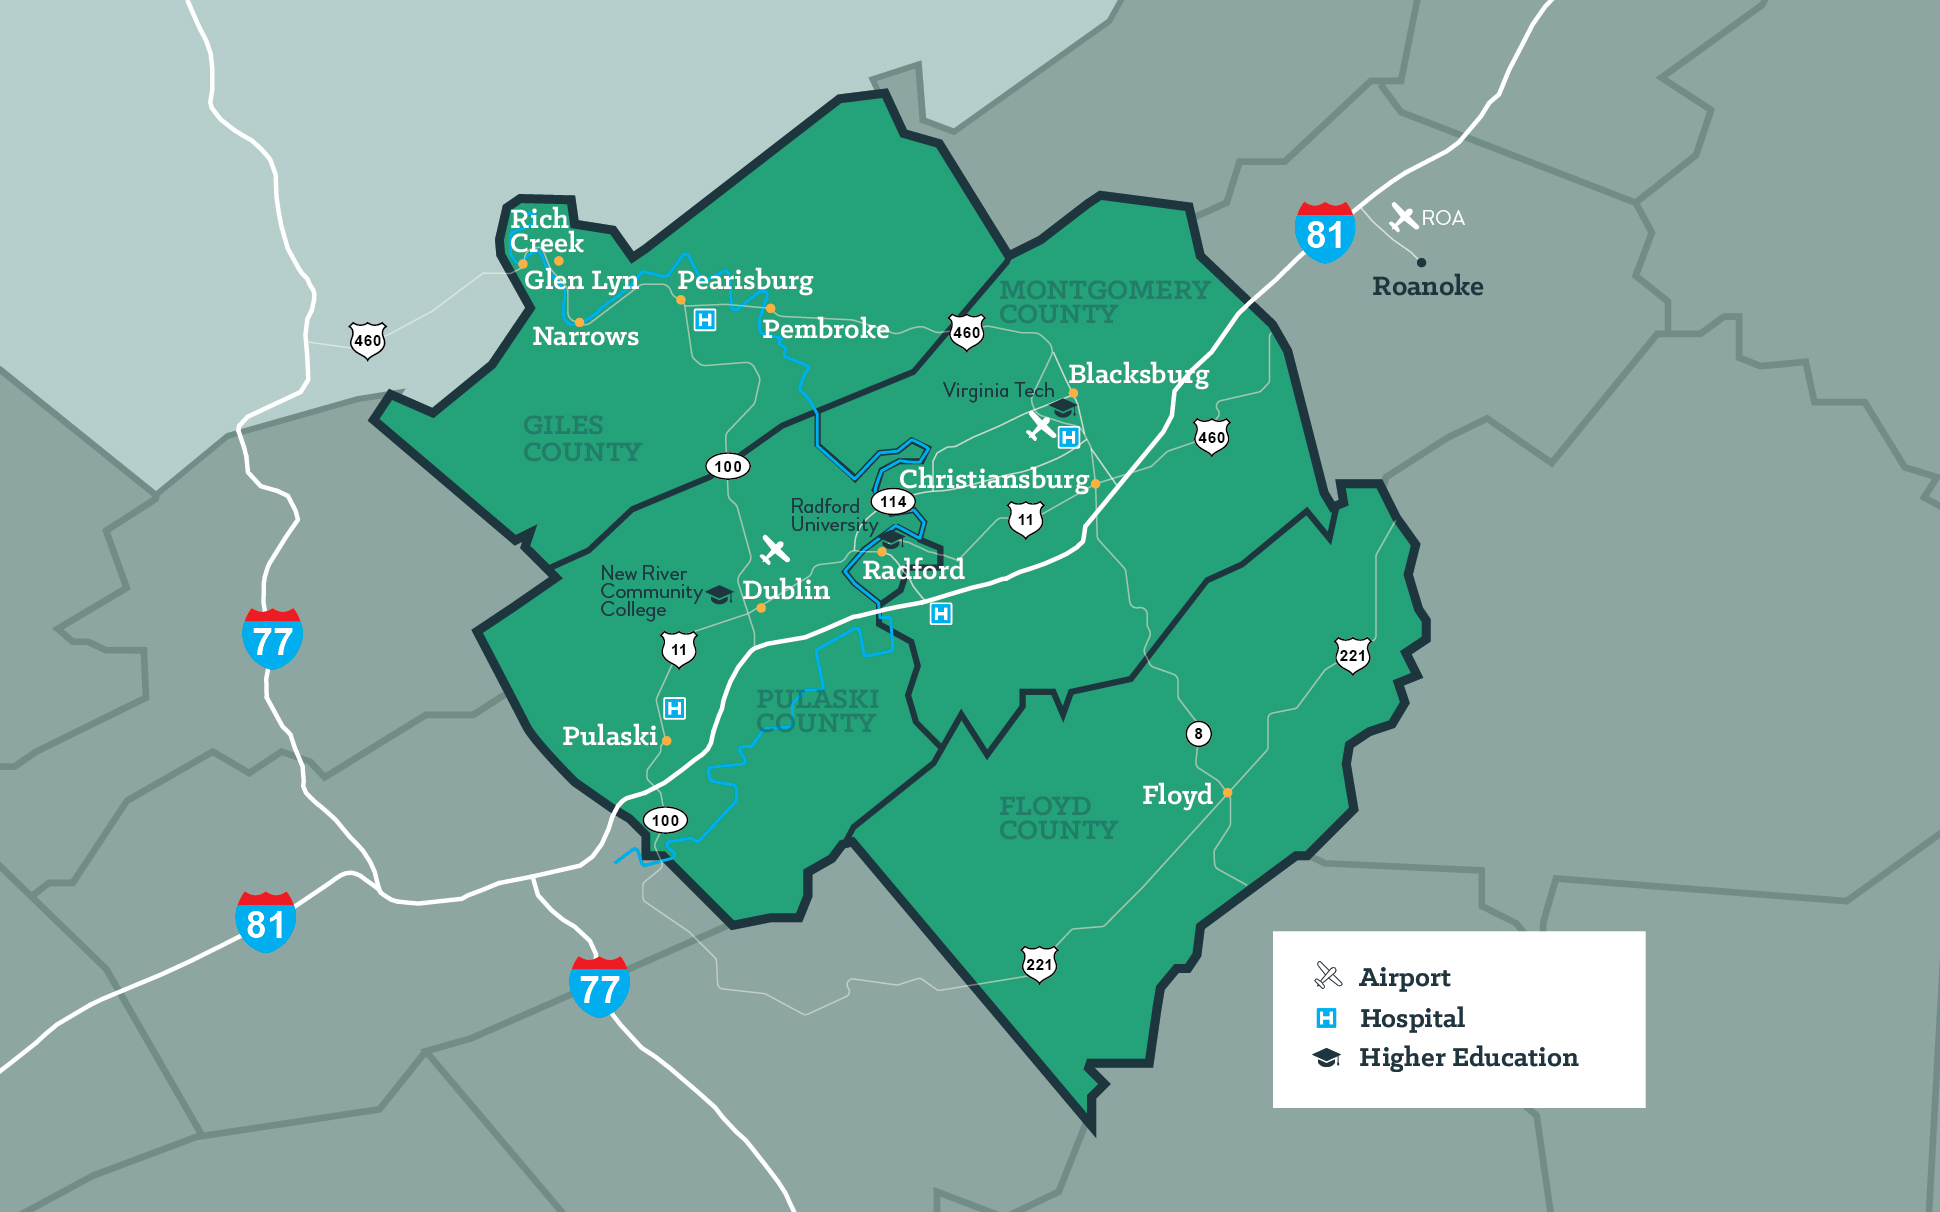 Maps of Virginia's New River Valley